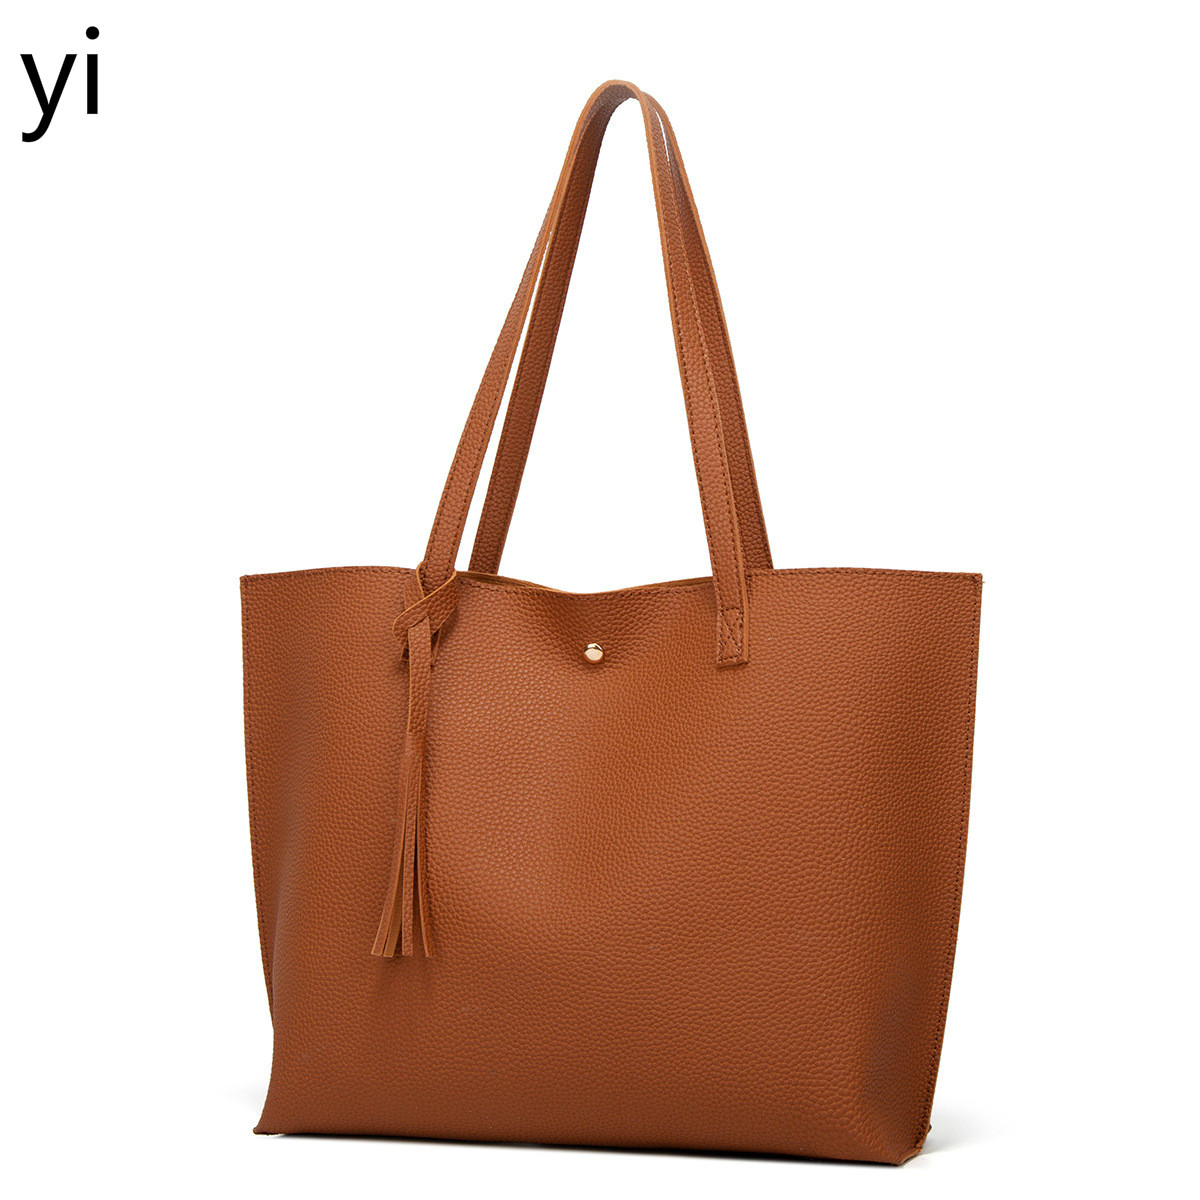 yi  new solid-color sub-daughter bag large-capacity one-shoulder bag stylish shopping bag